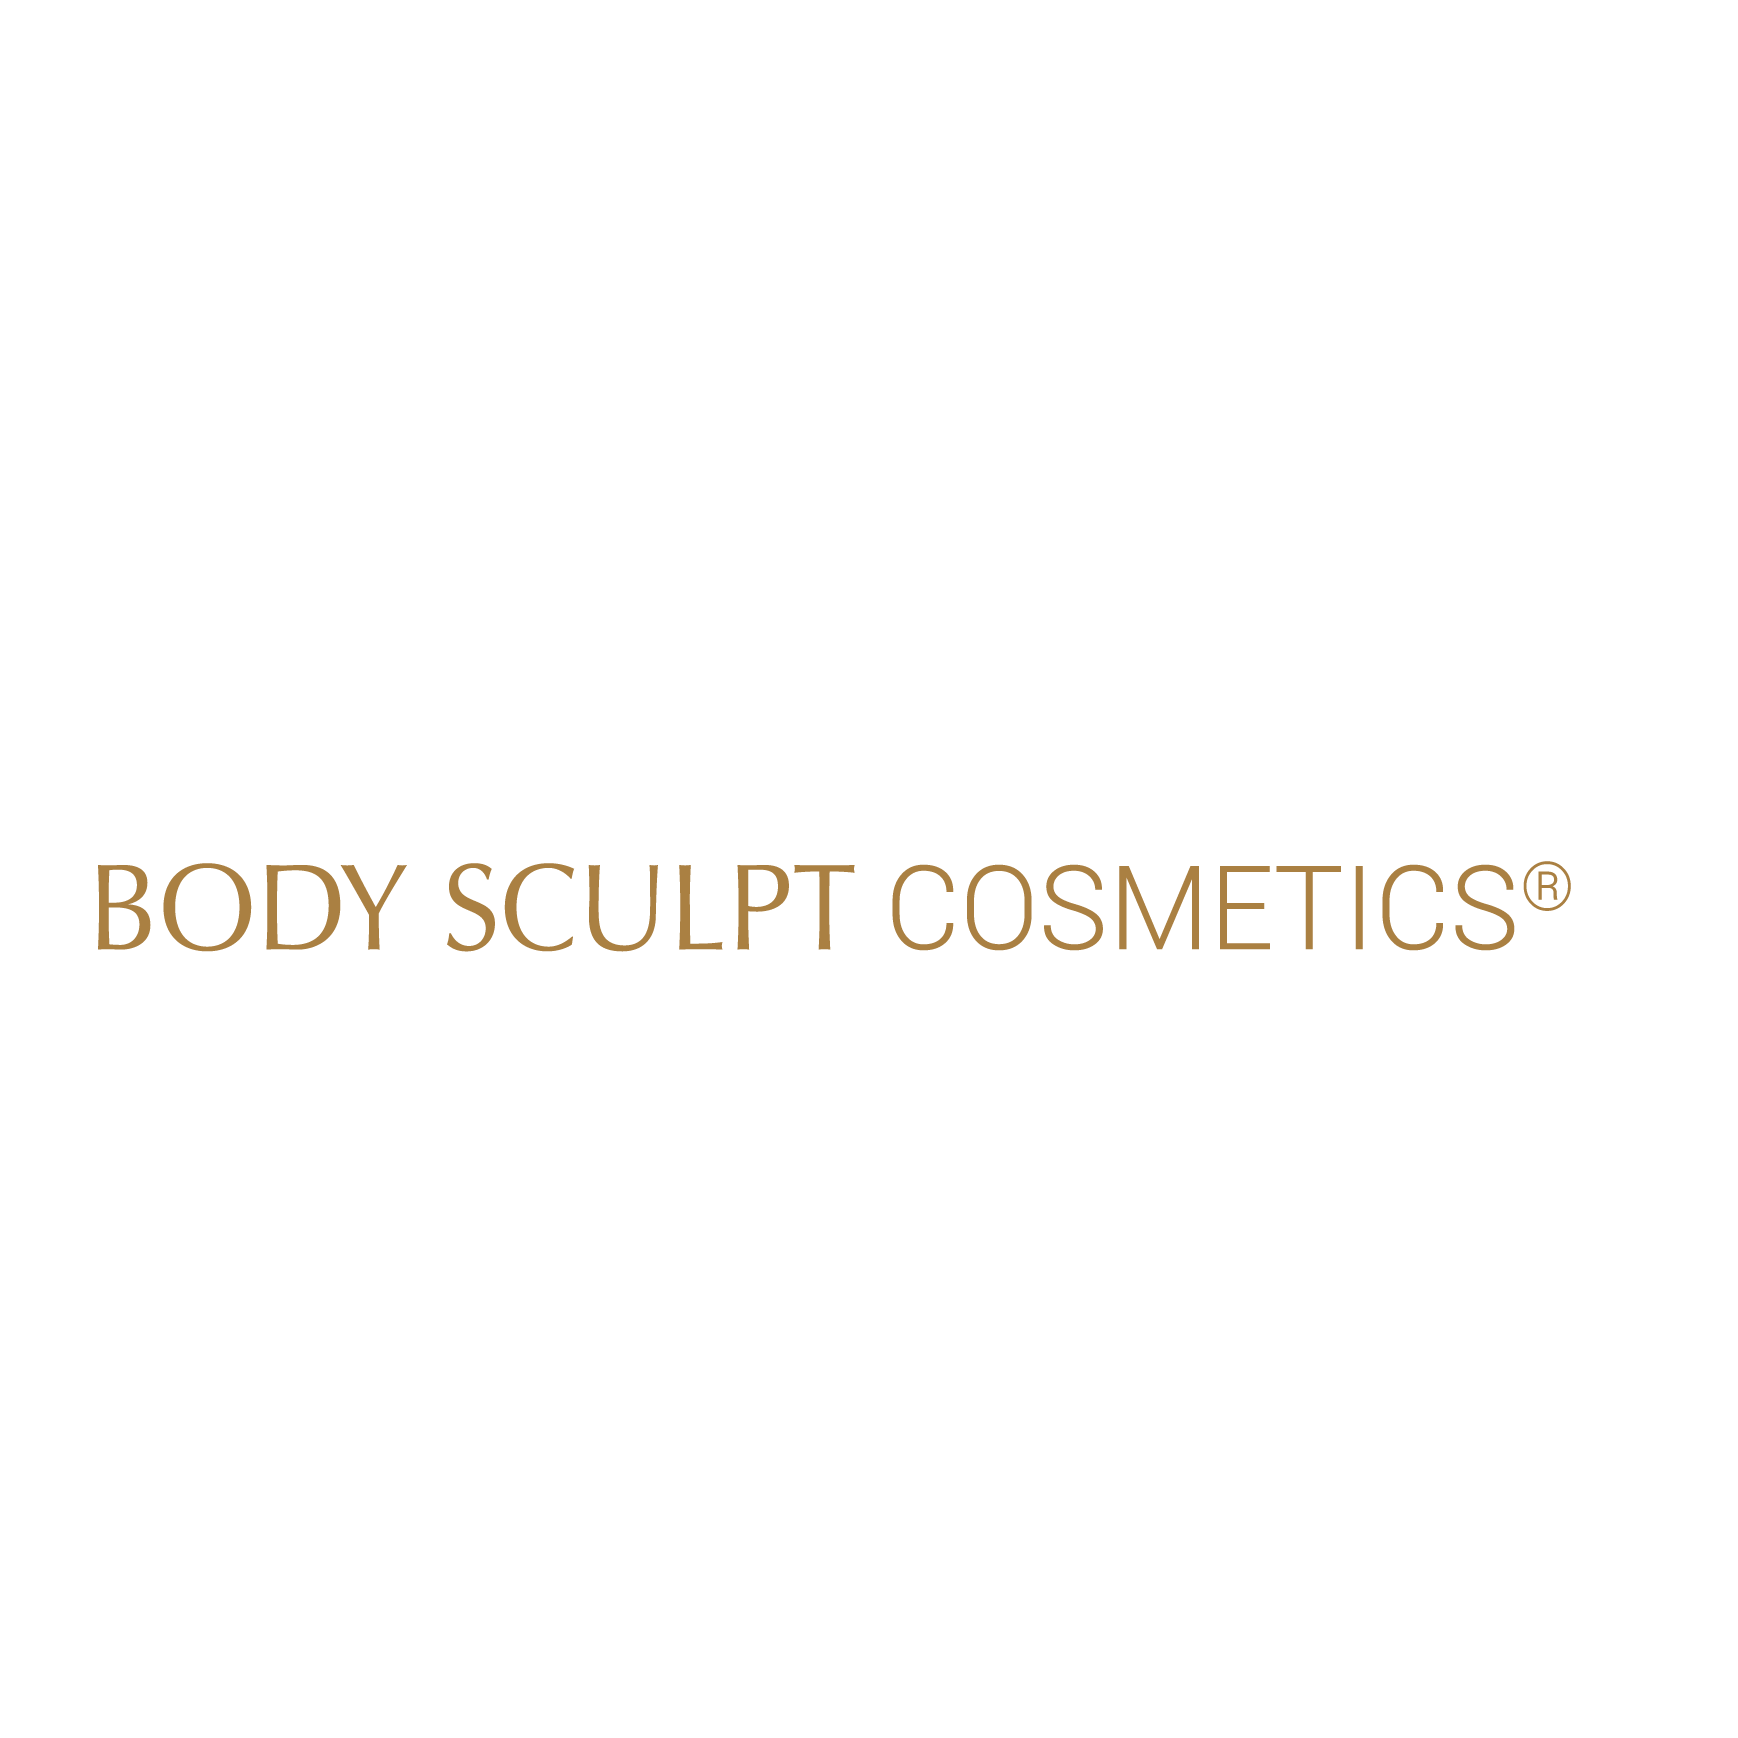 Body Sculpt Cosmetics